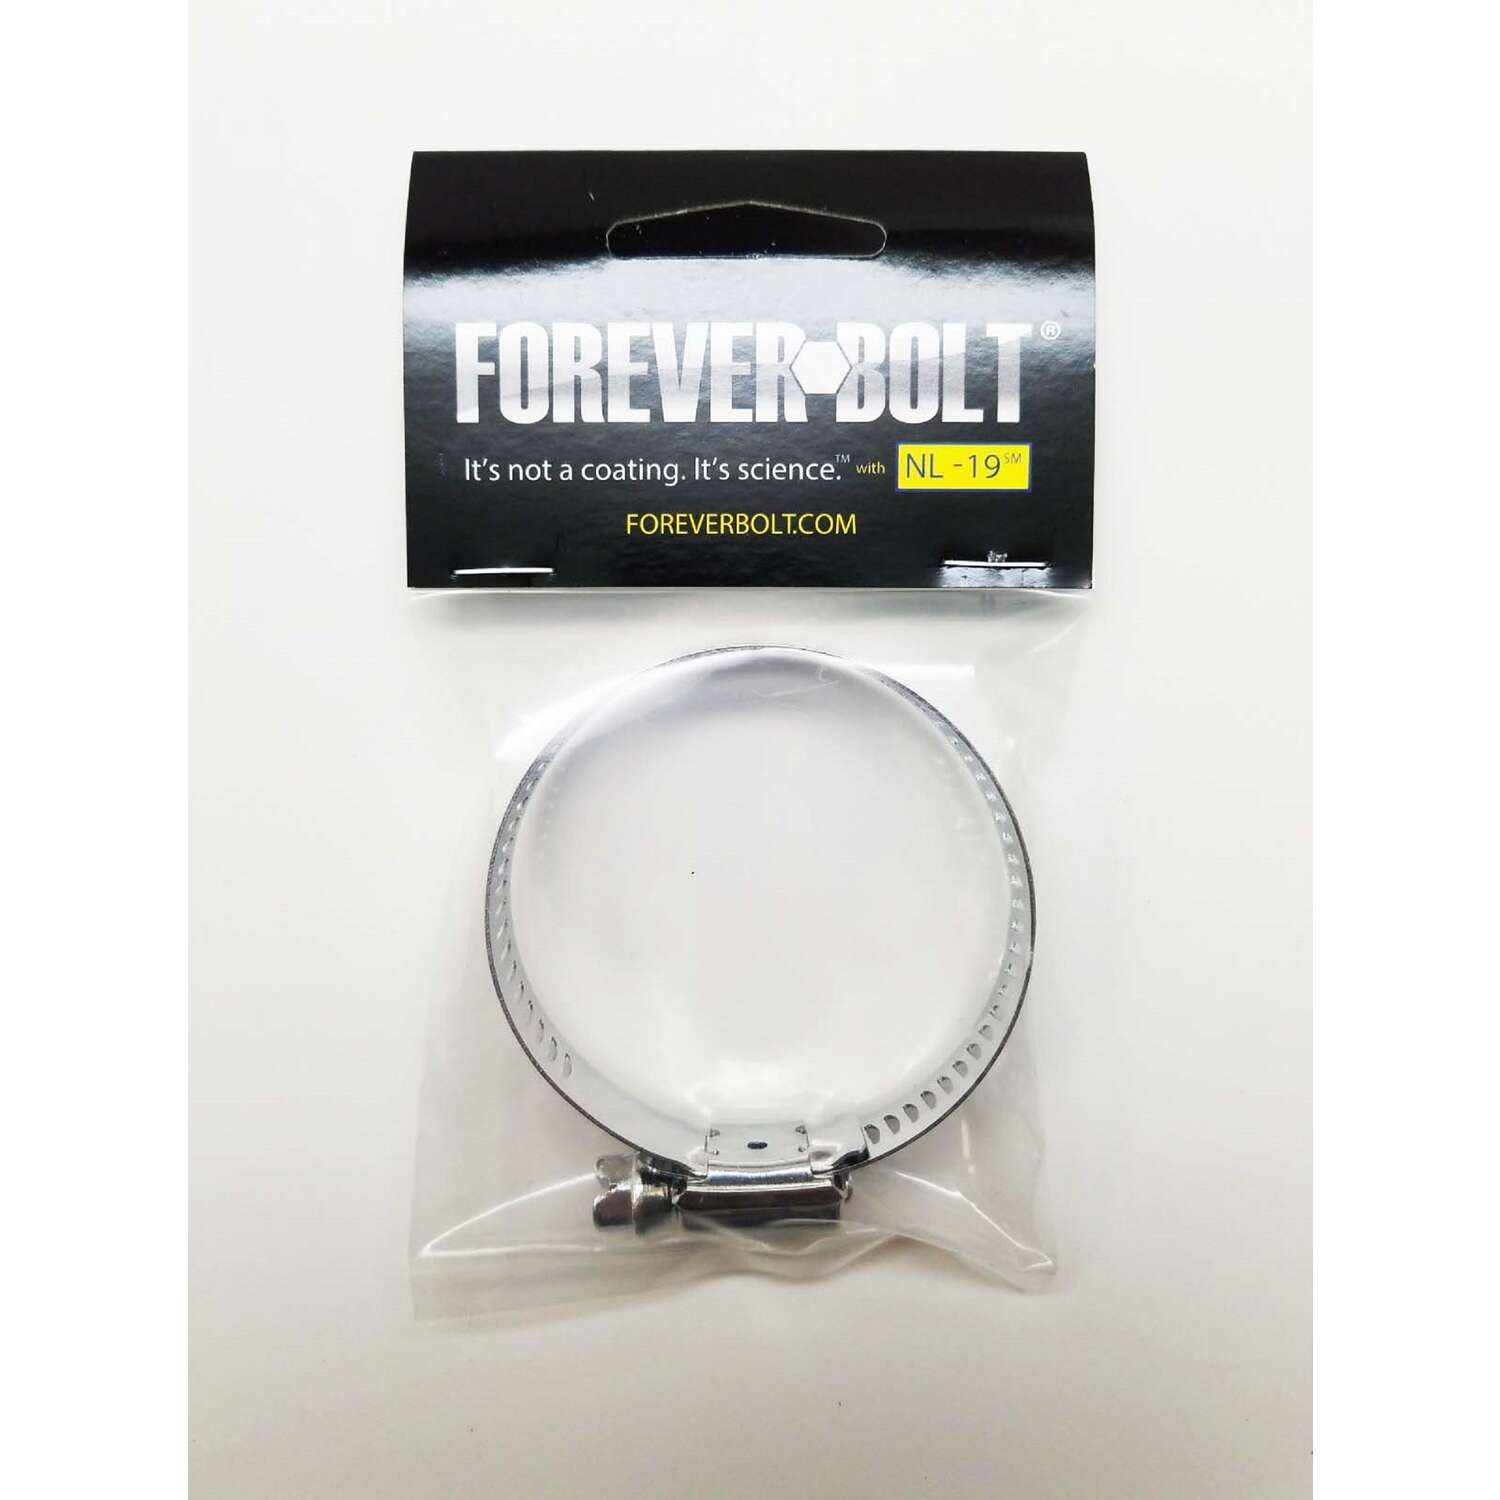 FOREVERBOLT  1-5/16 in. to 2-1/4 in. SAE 32  Silver  Hose Clamp  Stainless Steel  Band